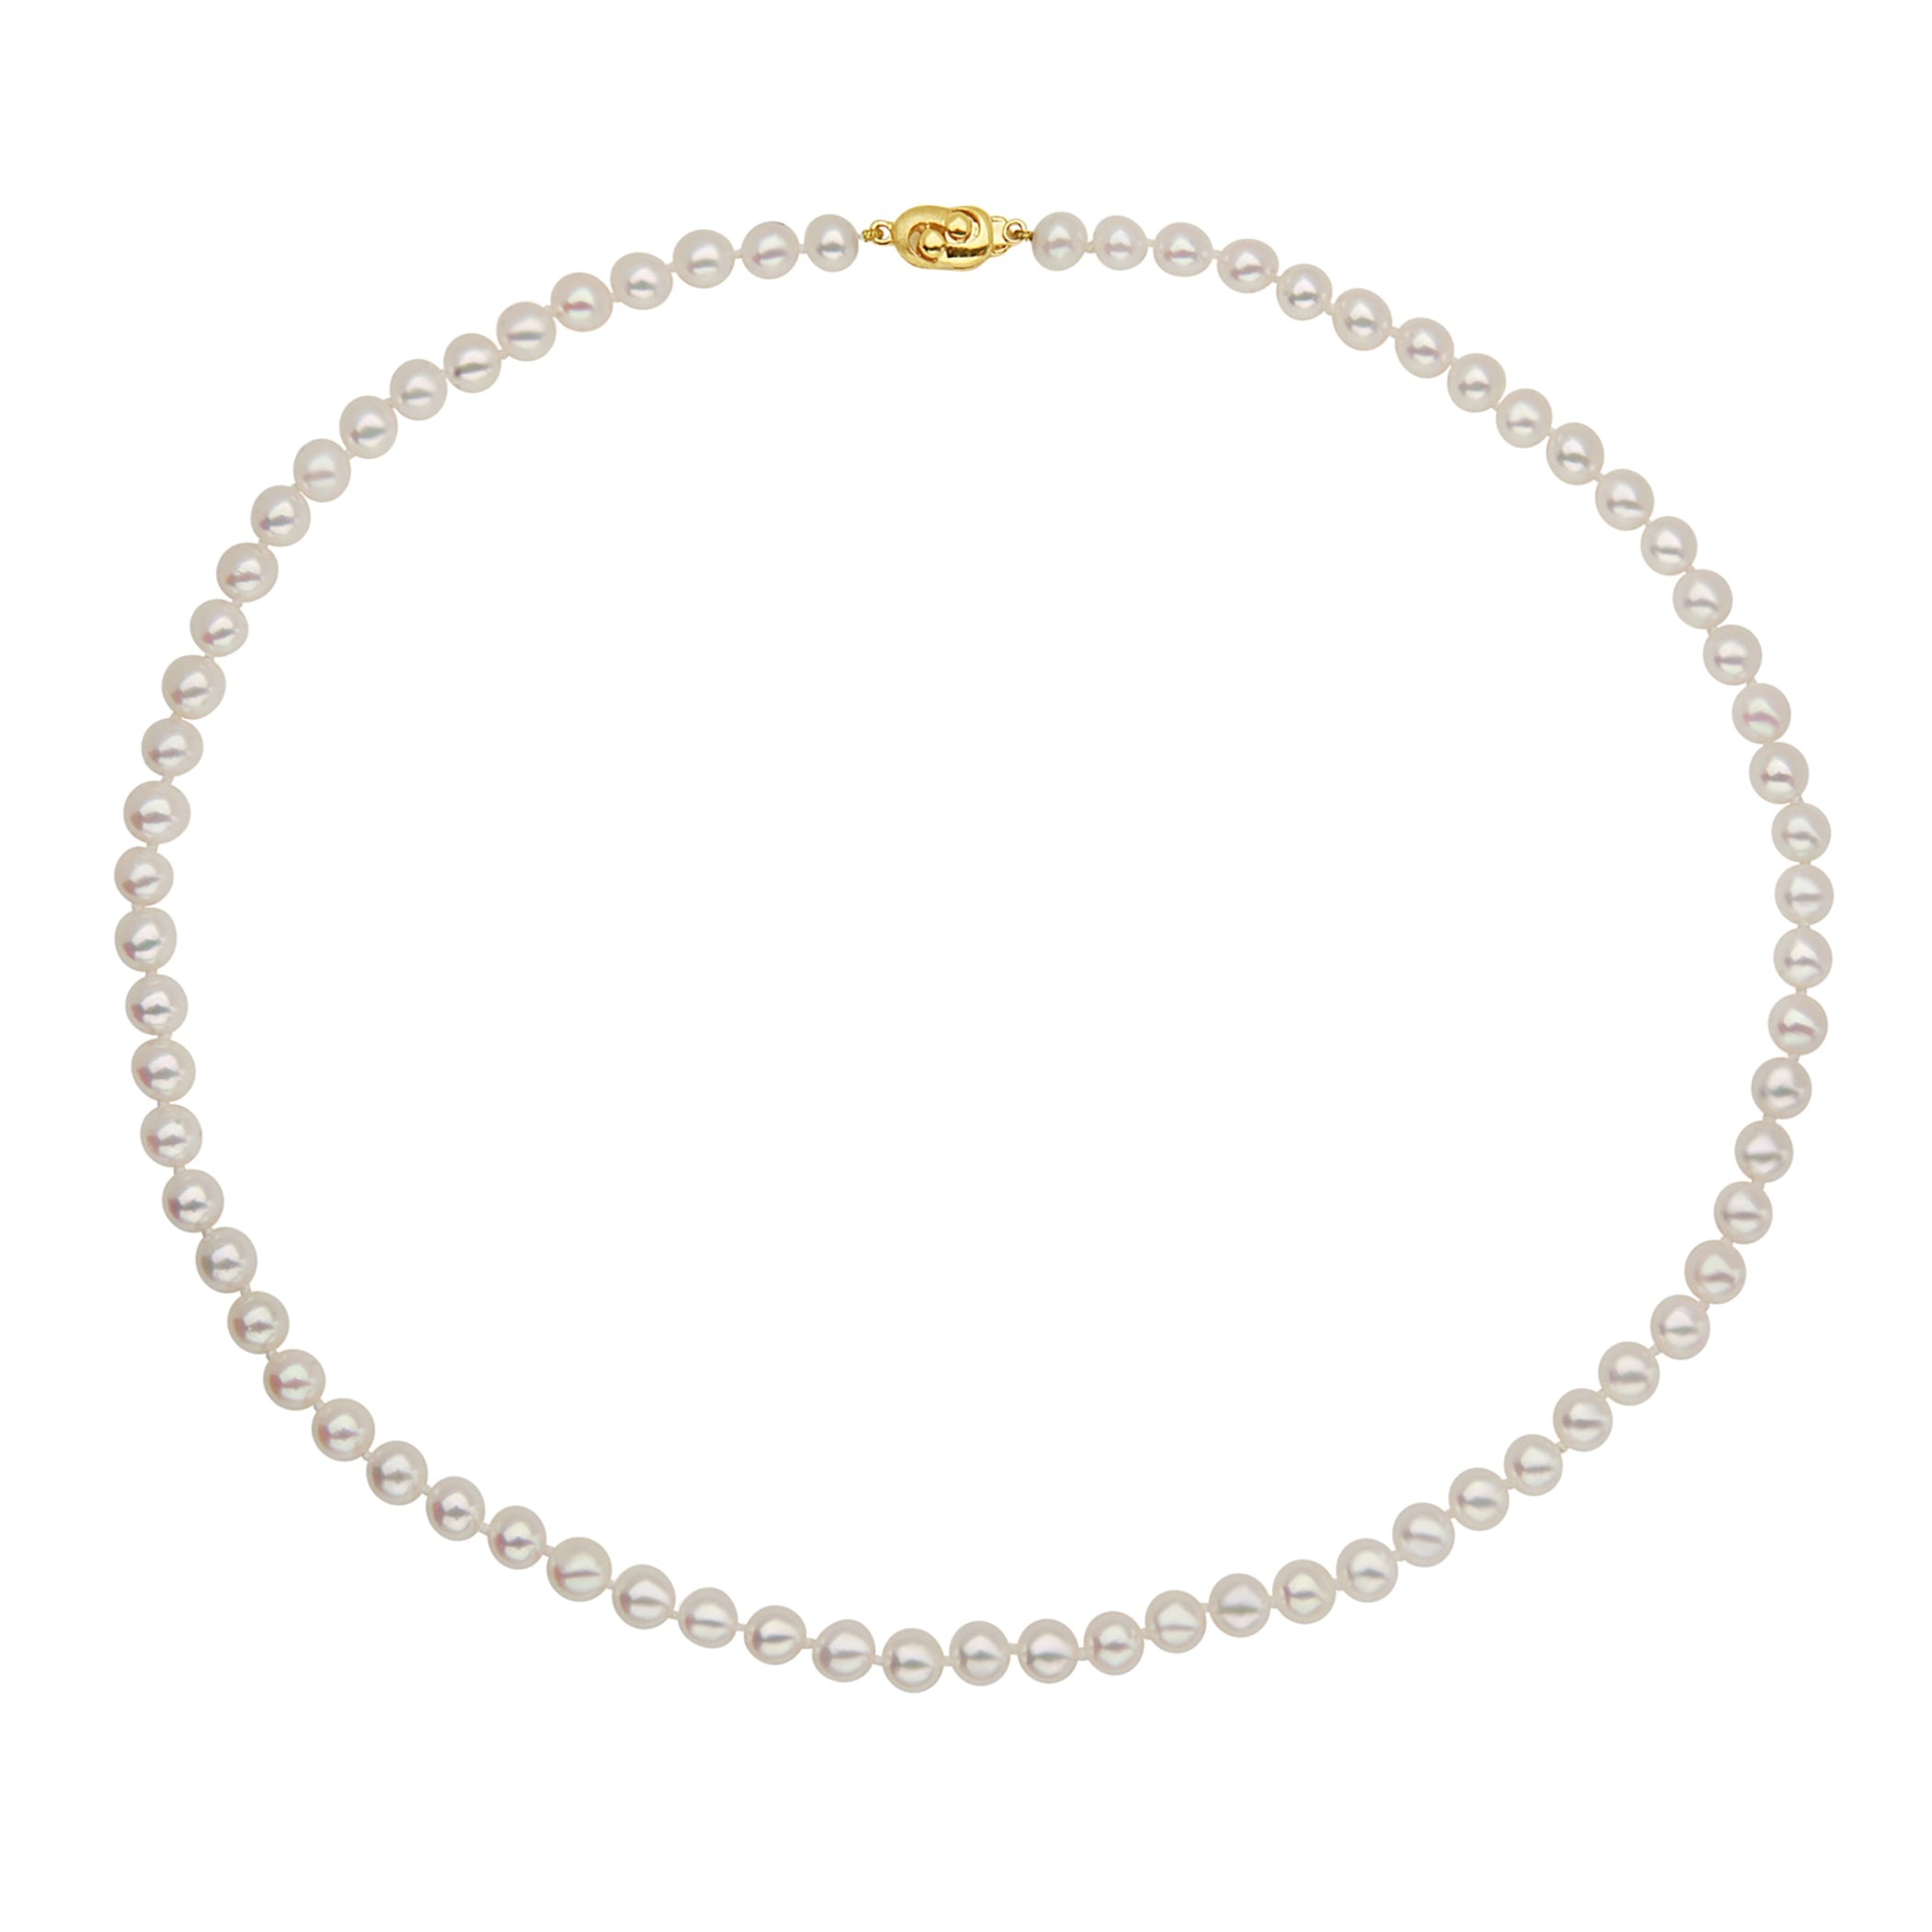 7x7.5mm Akoya Pearl Necklace